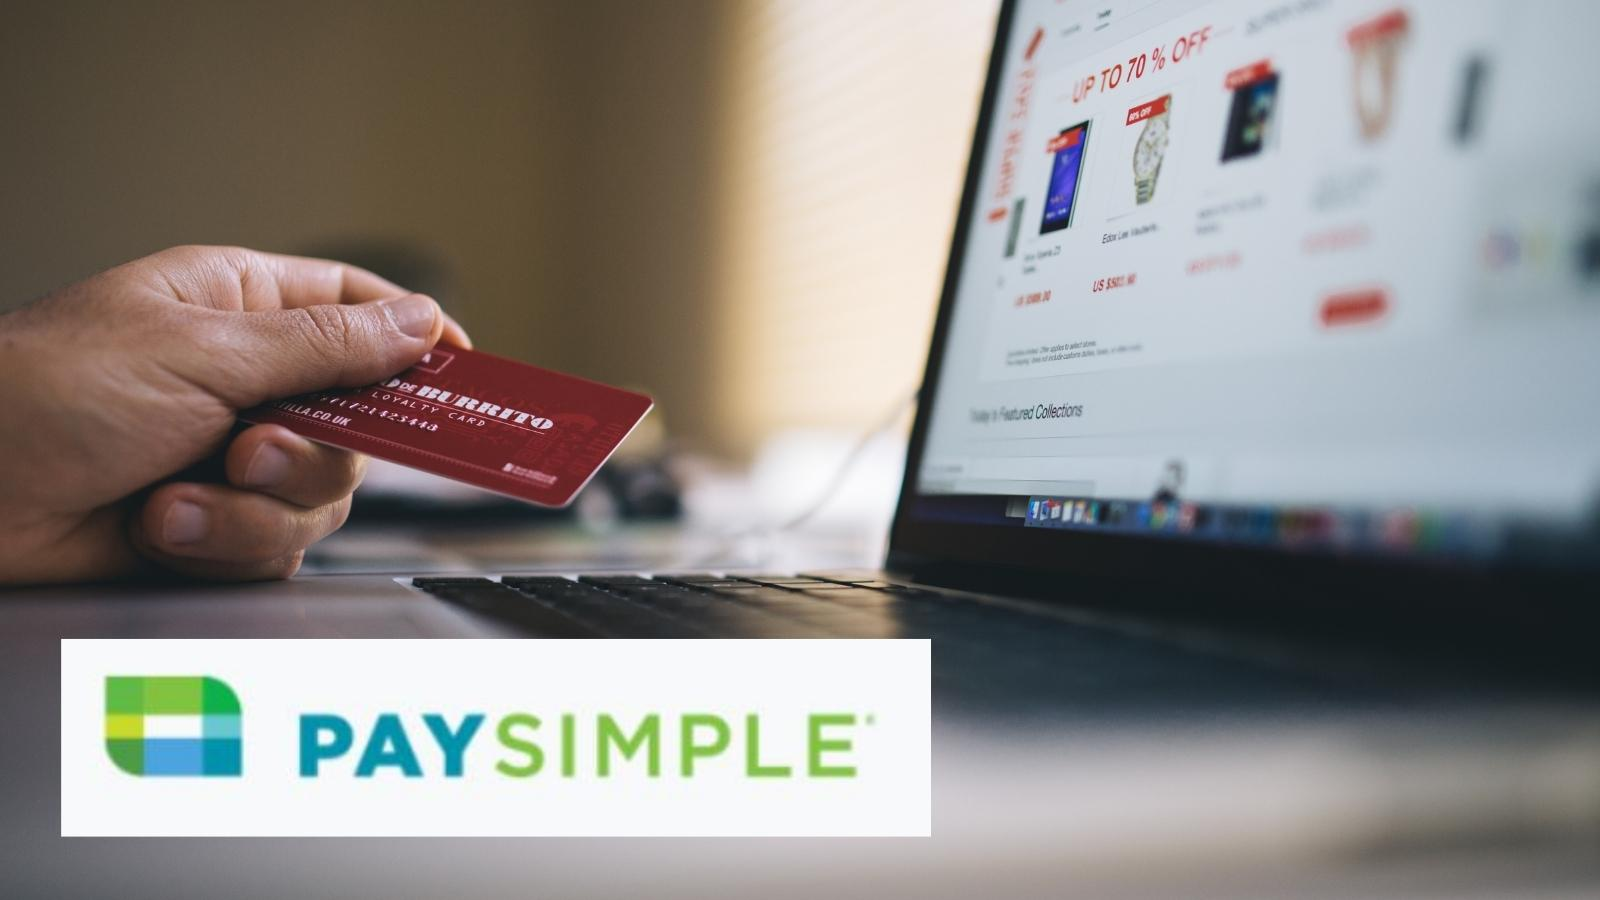 Paysimple payment processor